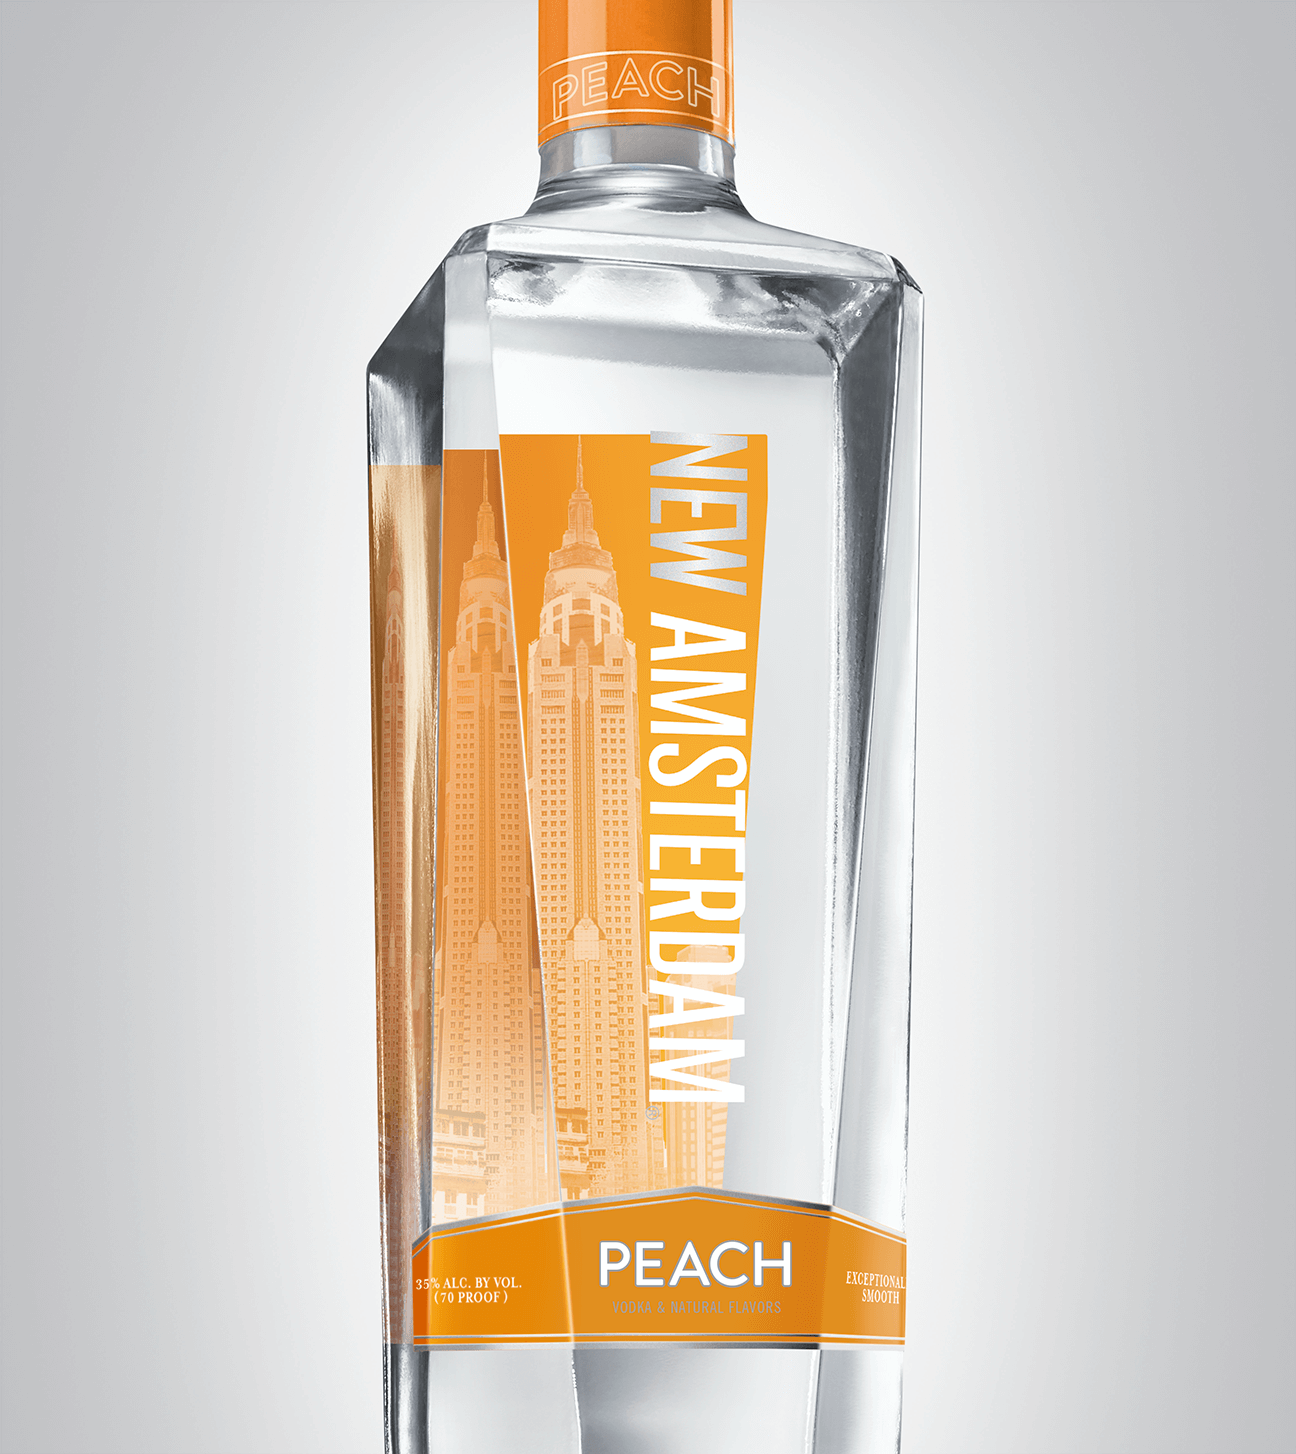 Bottle of New Amsterdam Peach